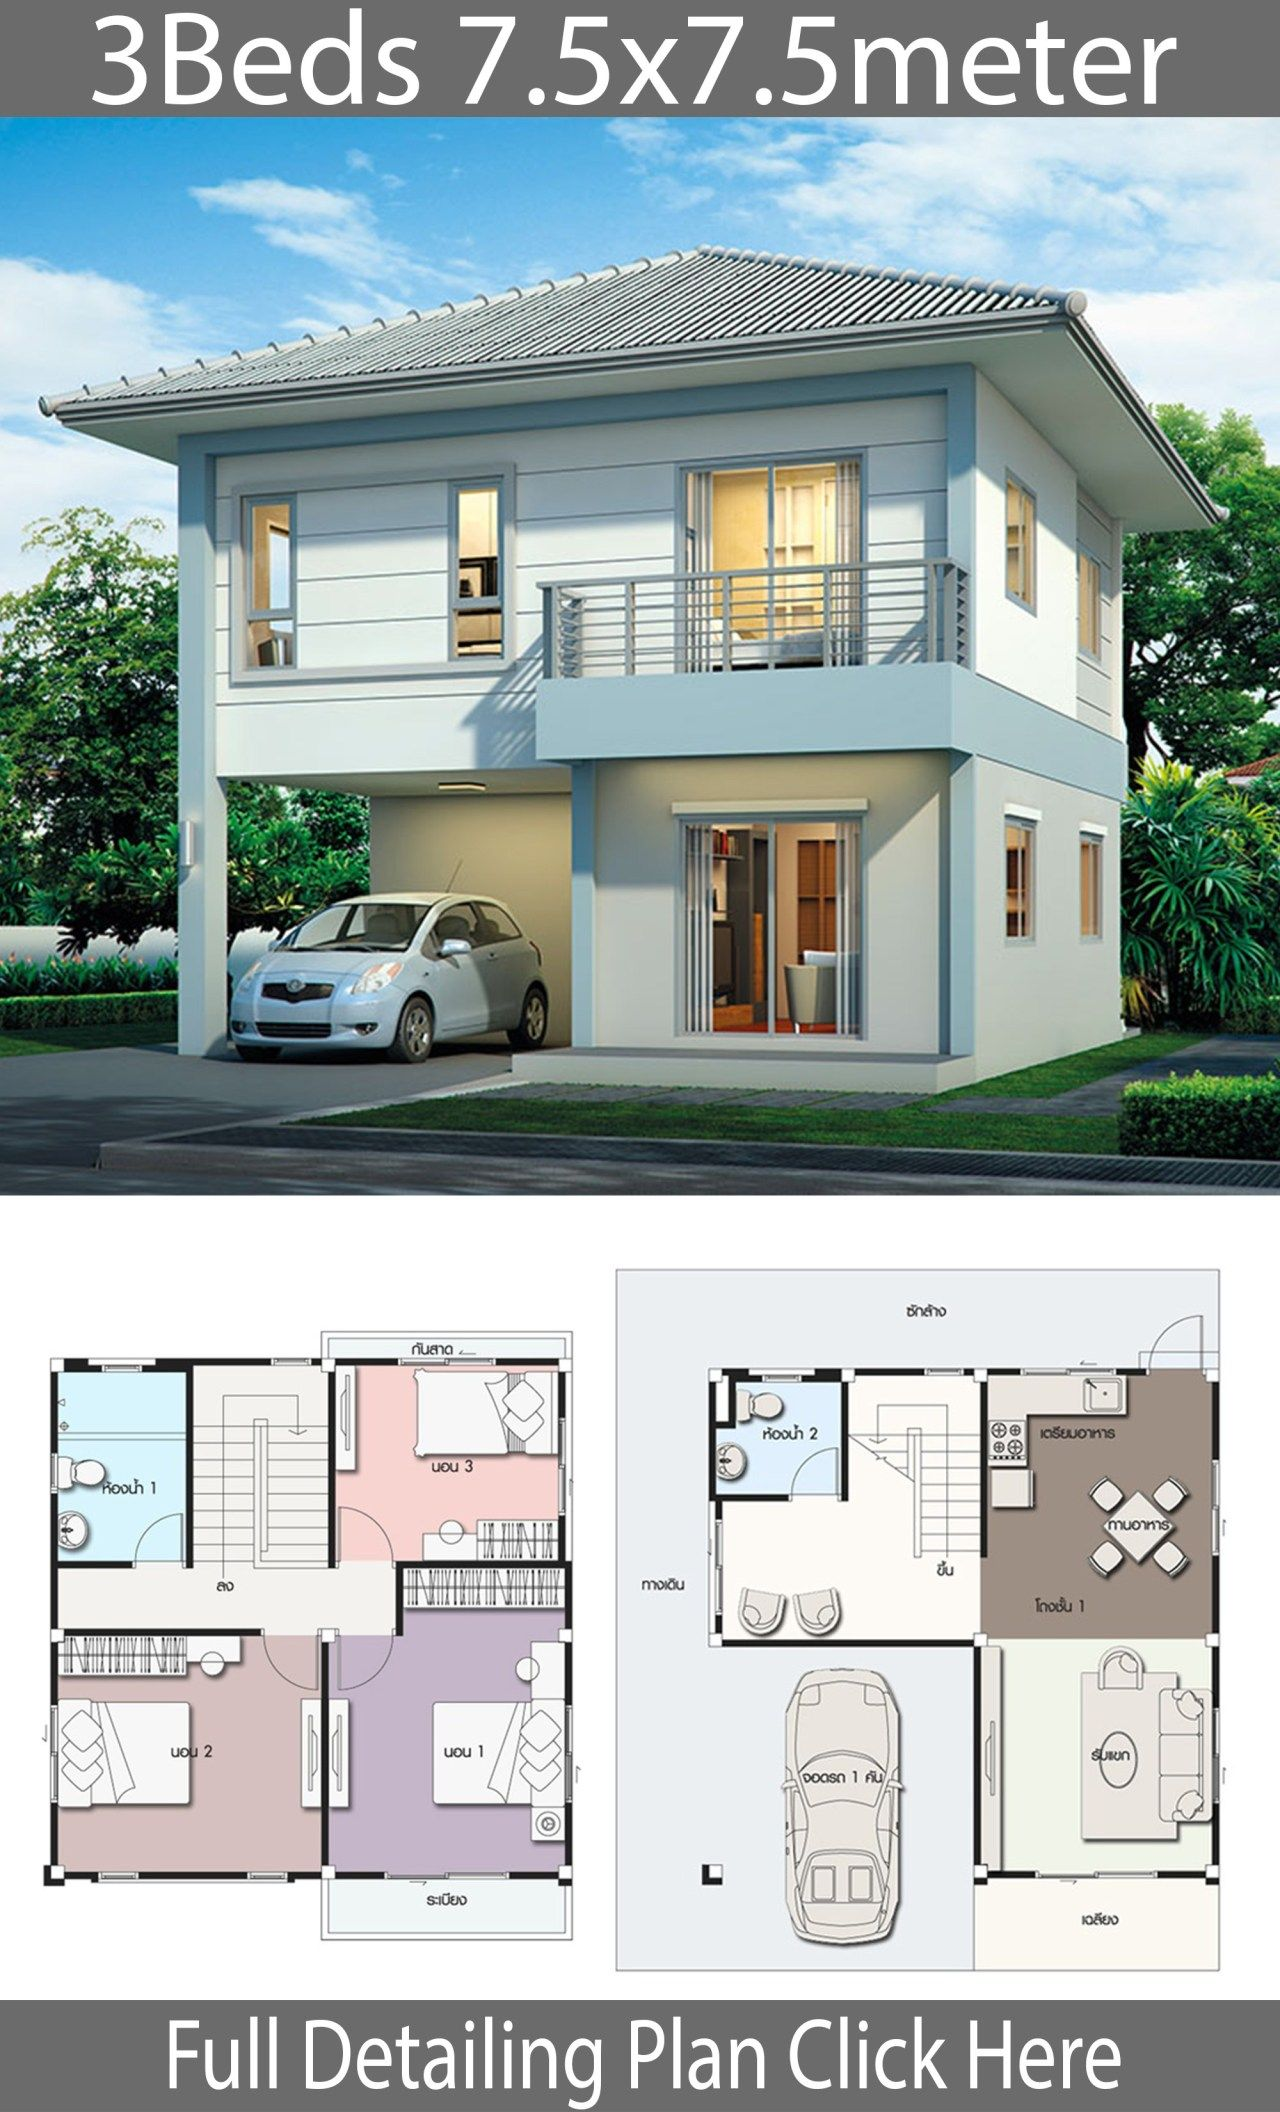 Modern House Design Plan 7 5x7 5m With 3beds Home Ideas Modern House Plans Modern House Design House Construction Plan